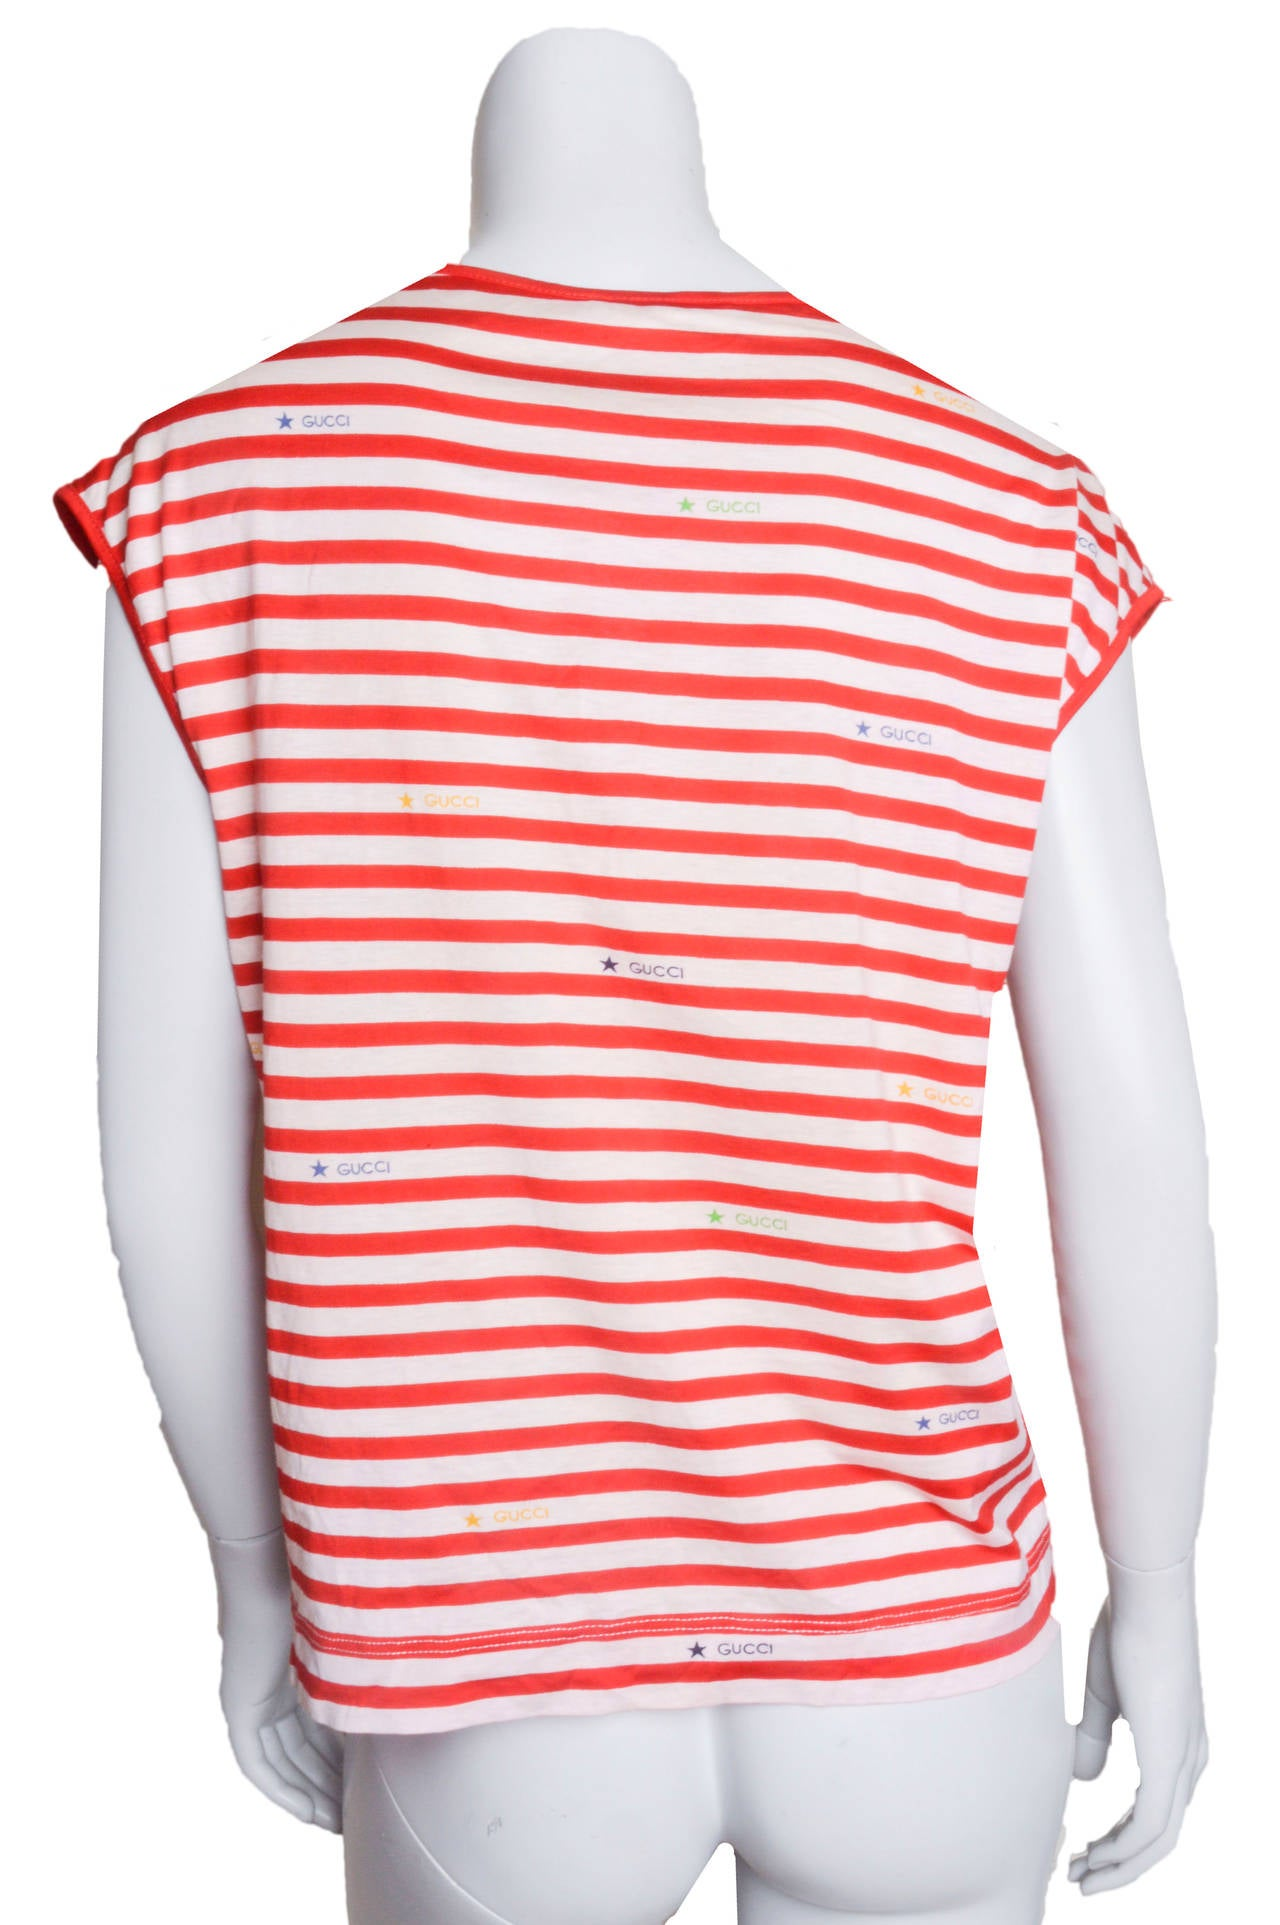 Gucci Red & White Striped Logo T-Shirt In Excellent Condition For Sale In San Francisco, CA